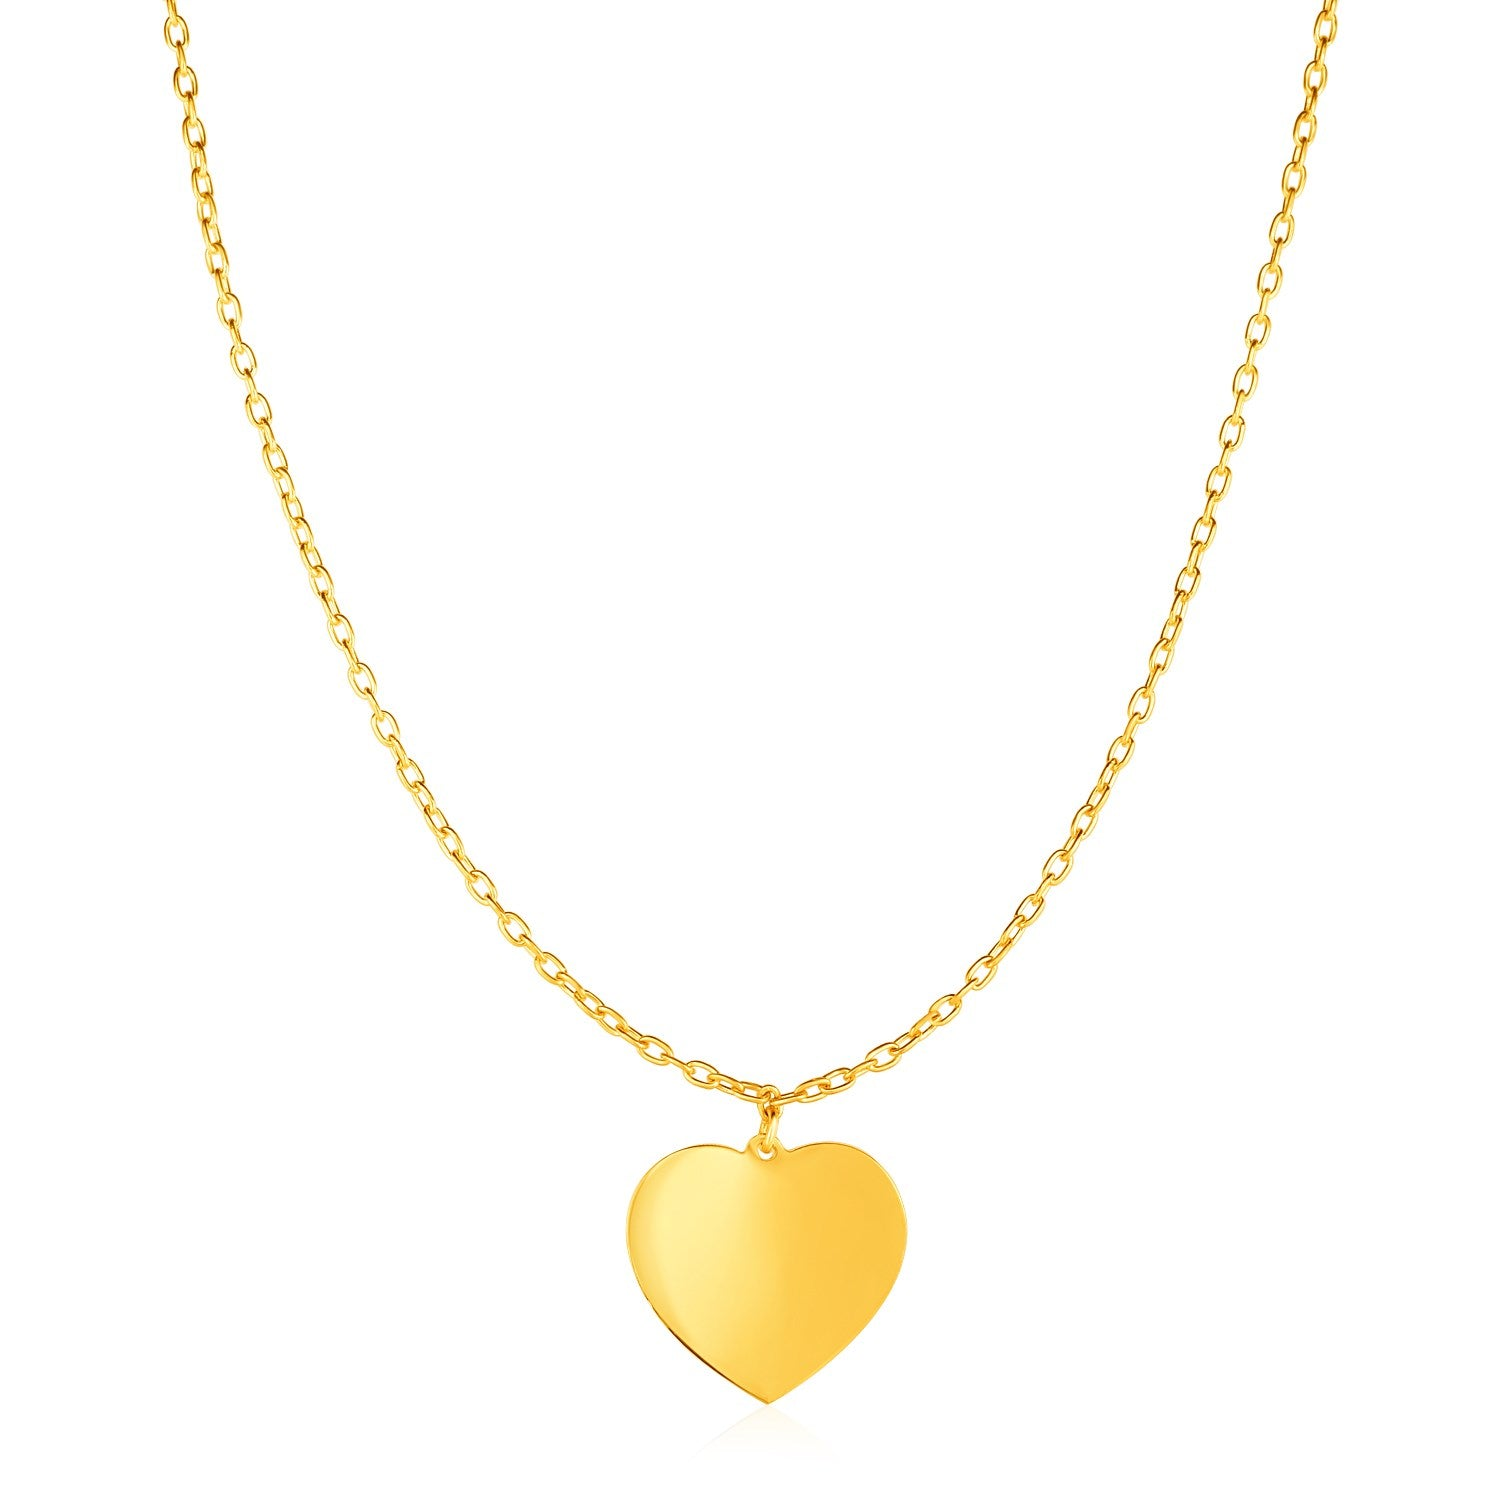 Choker Necklace with Polished Heart Pendant in 14K Yellow Gold